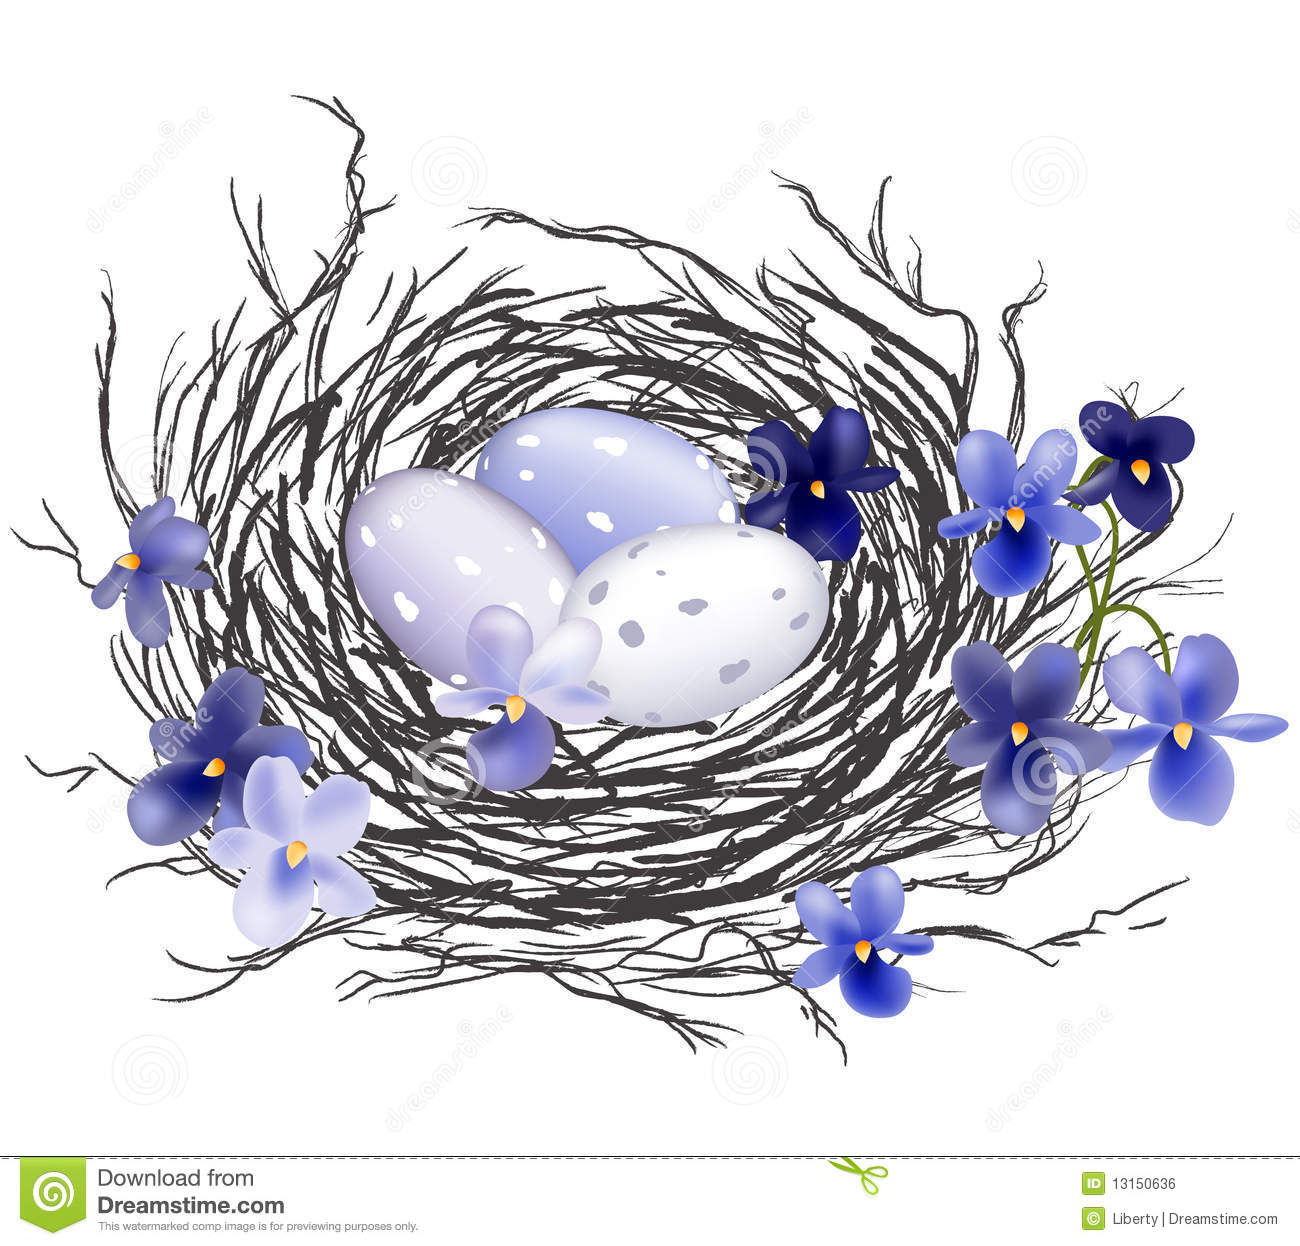 Bird Nest With Violets Royalty Free Stock Image - Image: 13150636